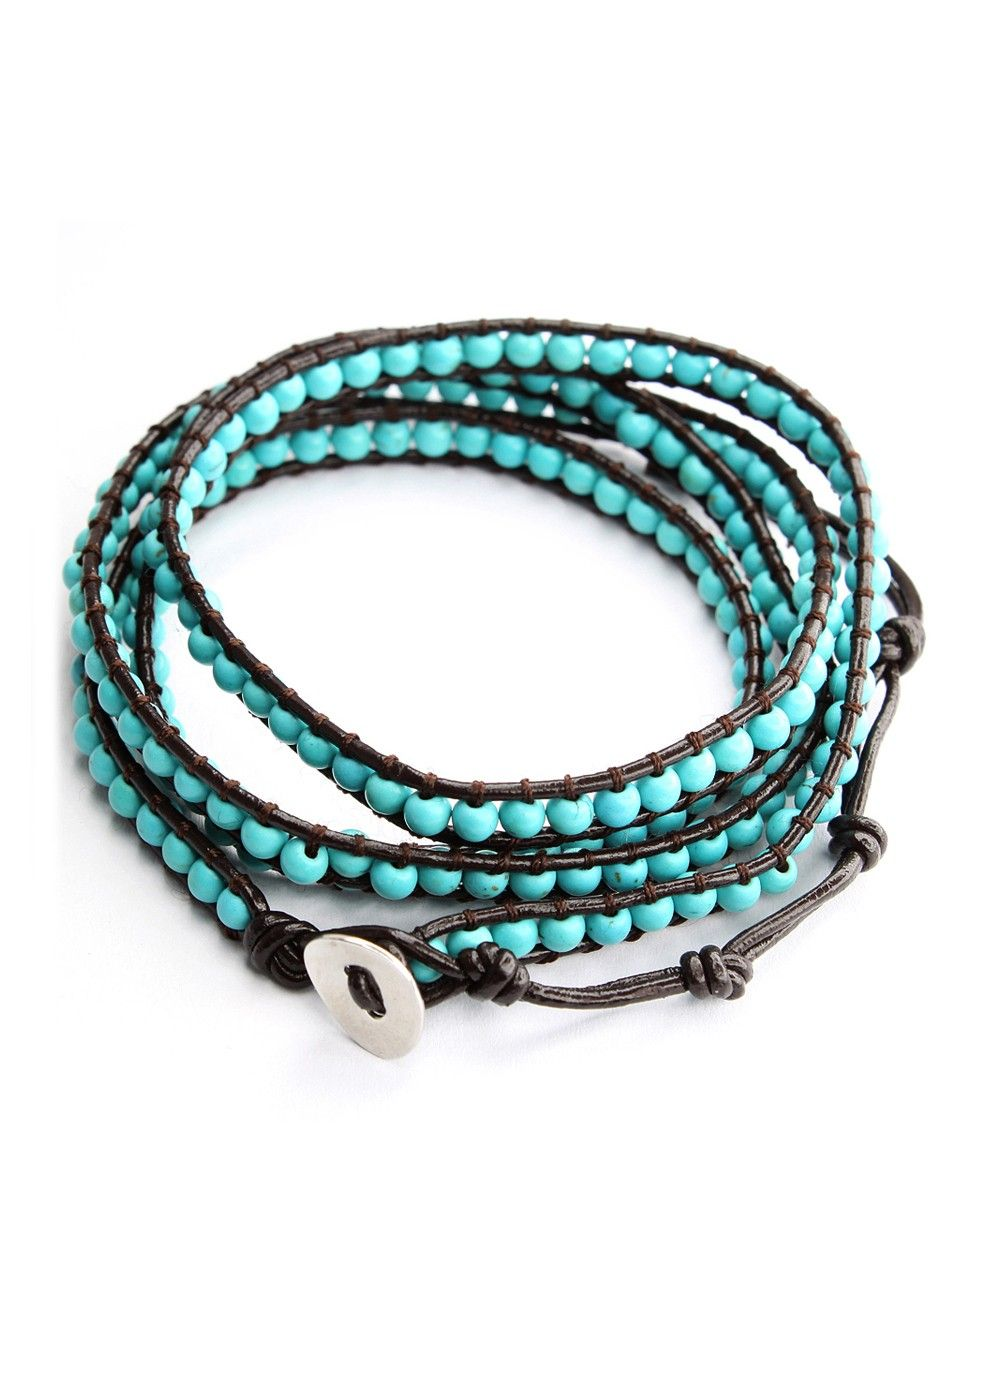 Turquoise Leather Knit Waistbelt Bracelet